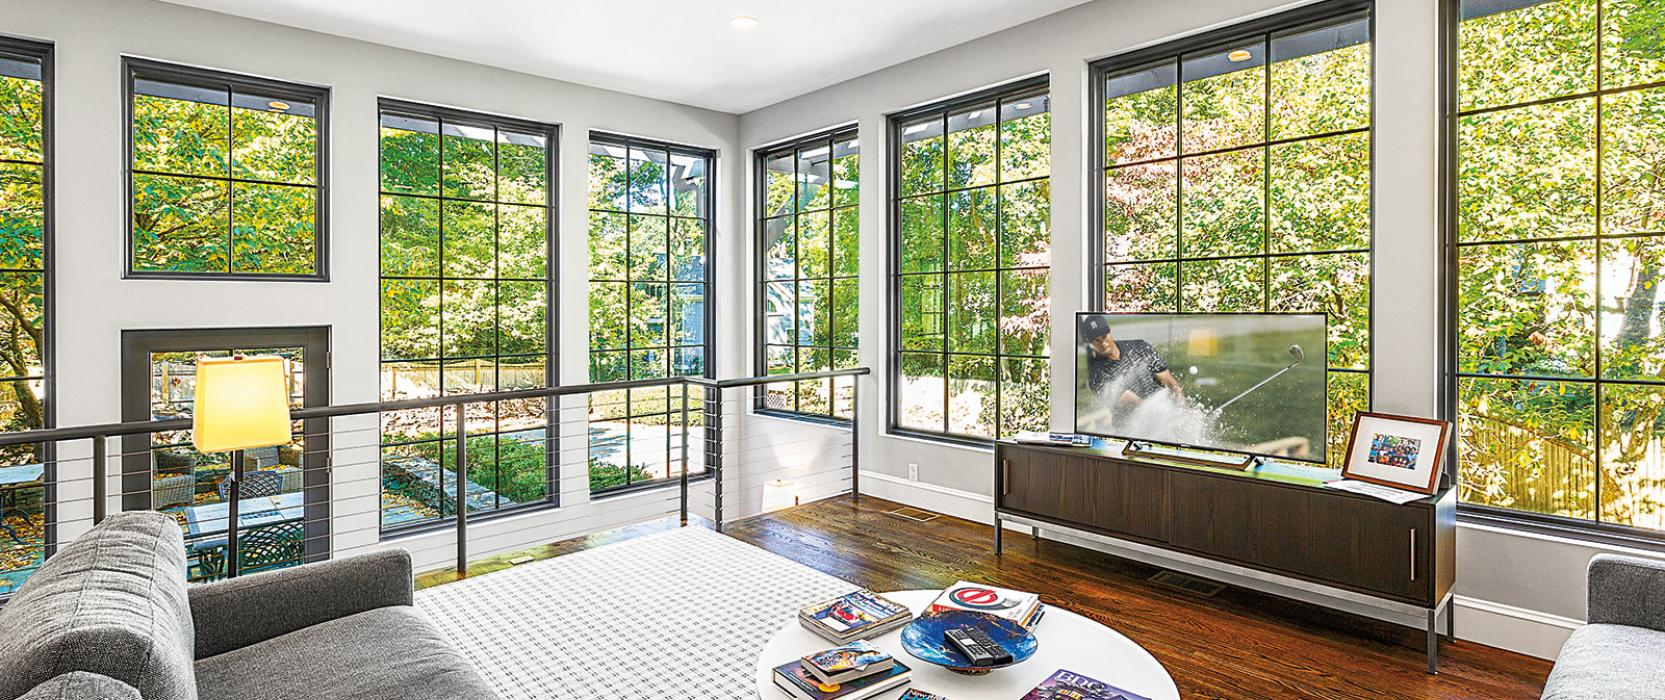 Peter Sachs Architect custom renovation with Pella Windows